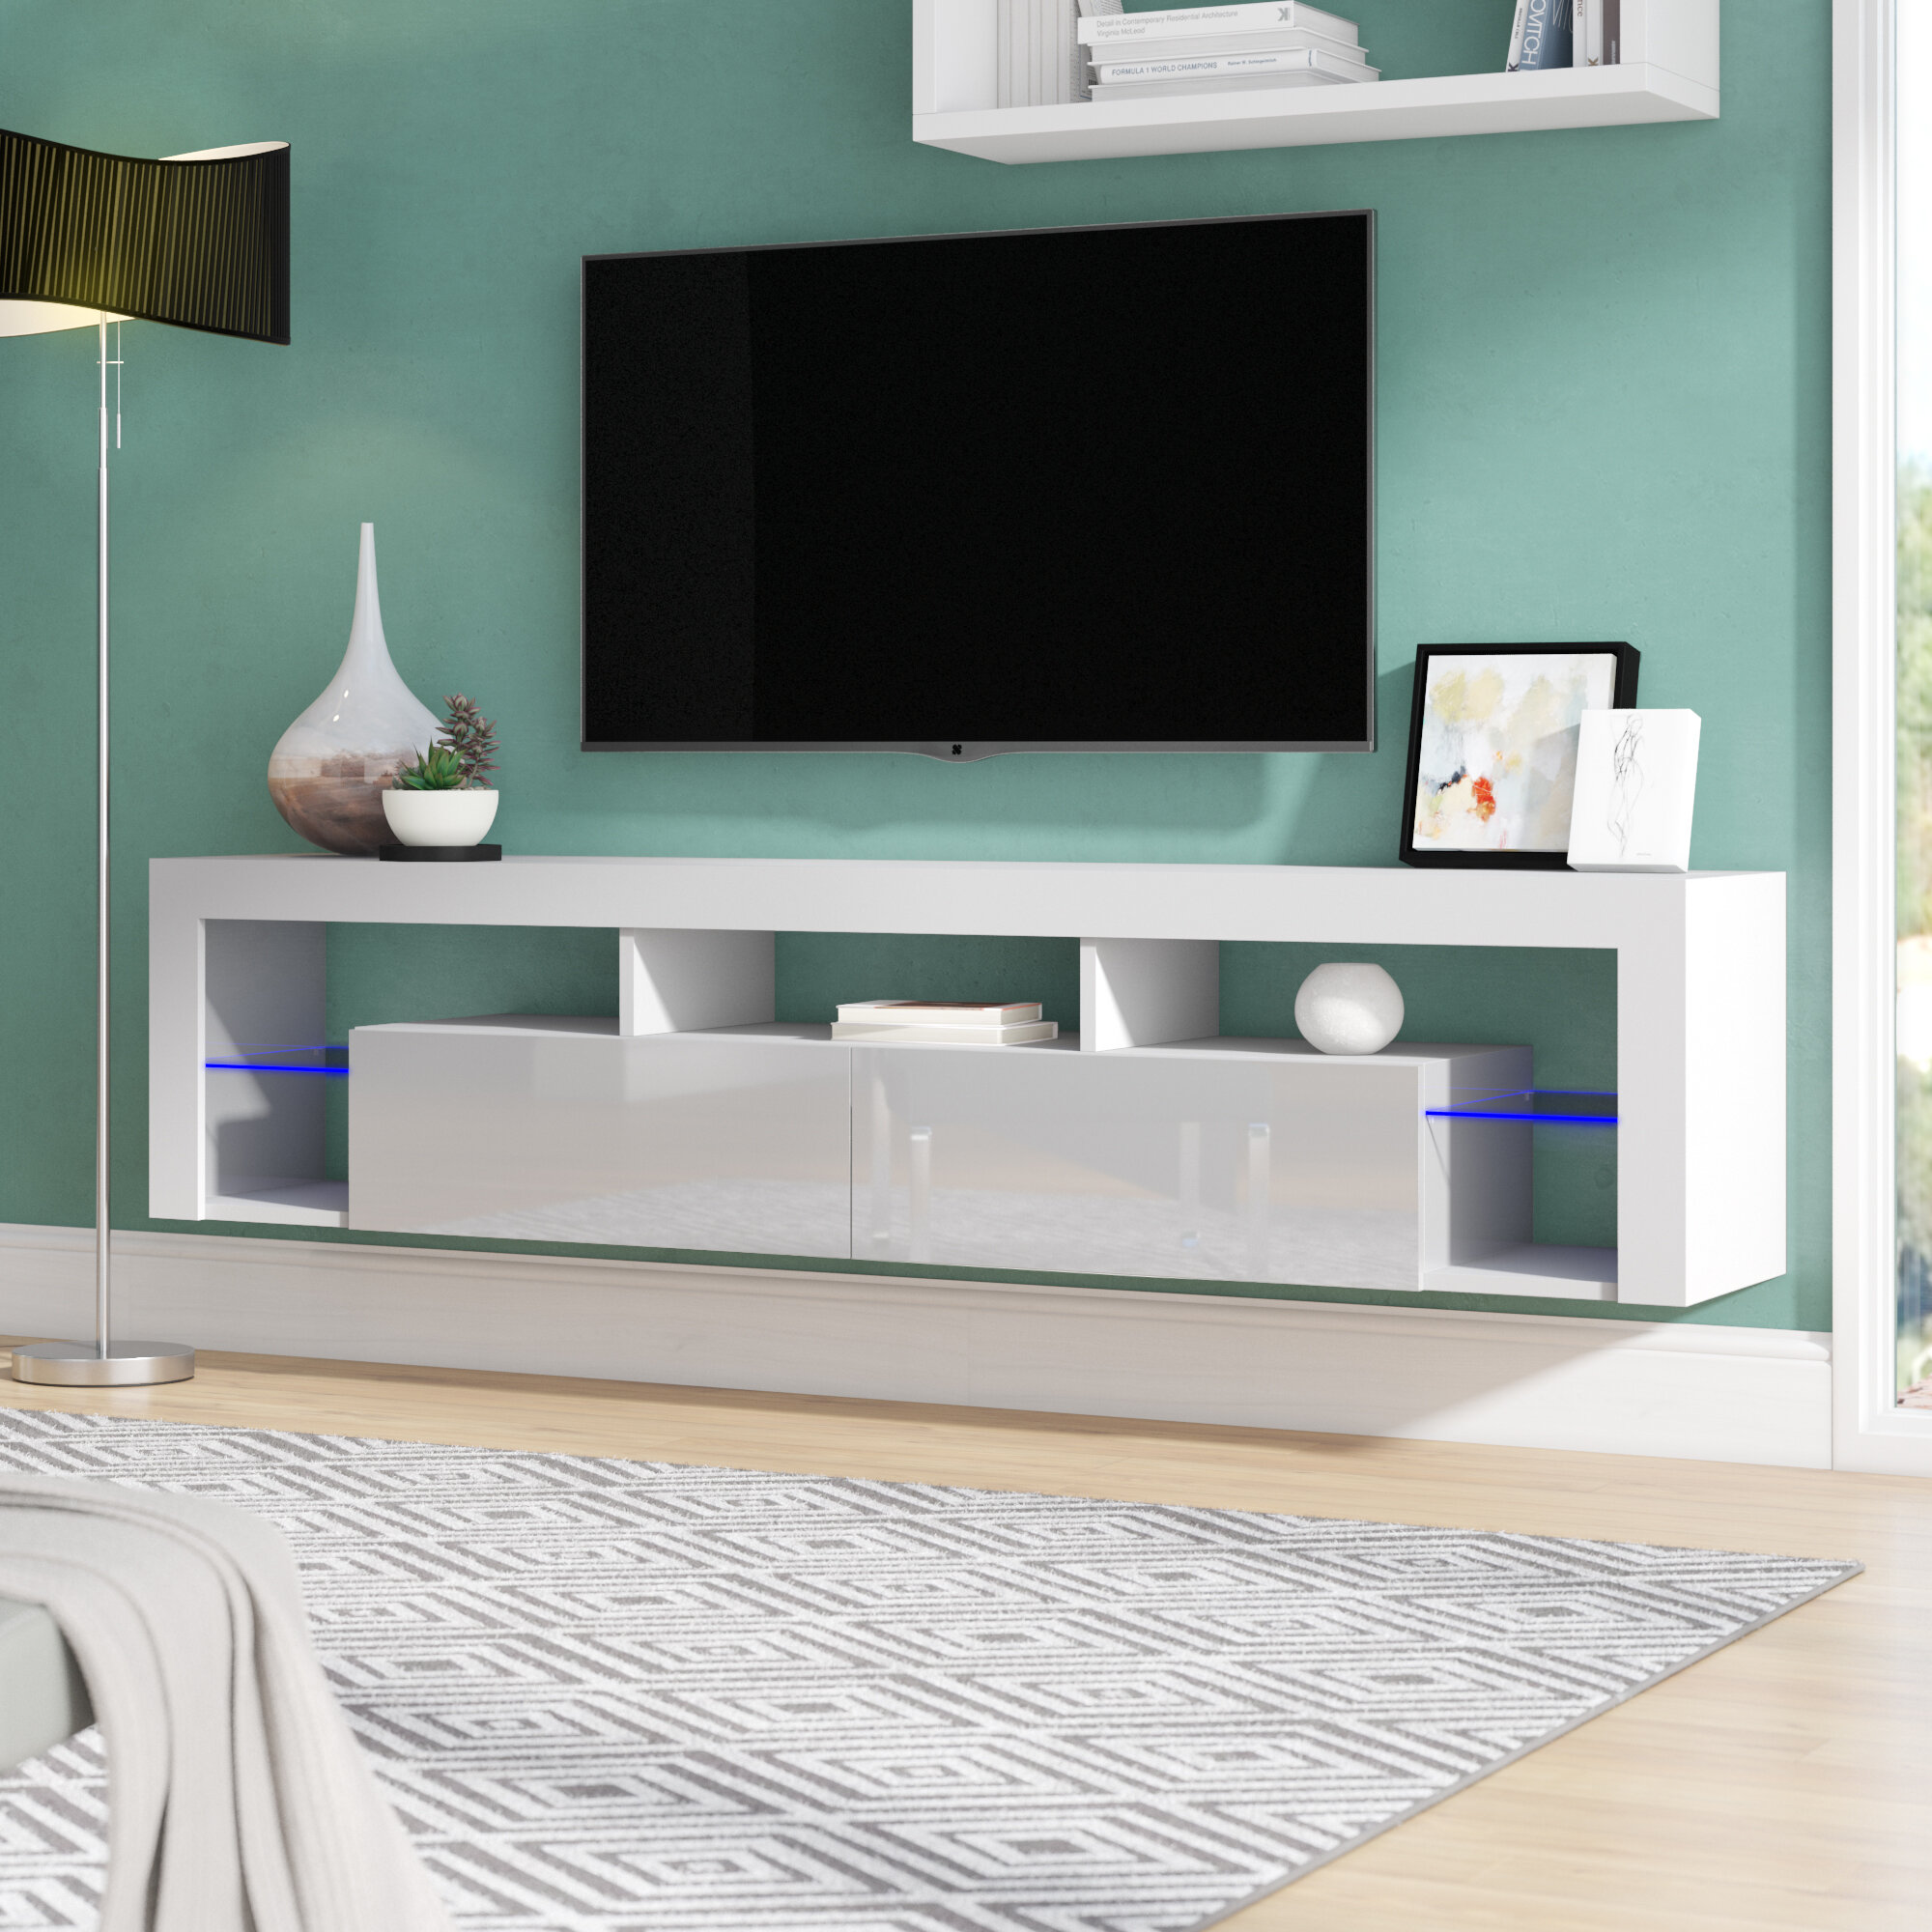 Orren Ellis Böttcher Wall Mounted Floating Tv Stand For Tvs Up To 88 Reviews Wayfair